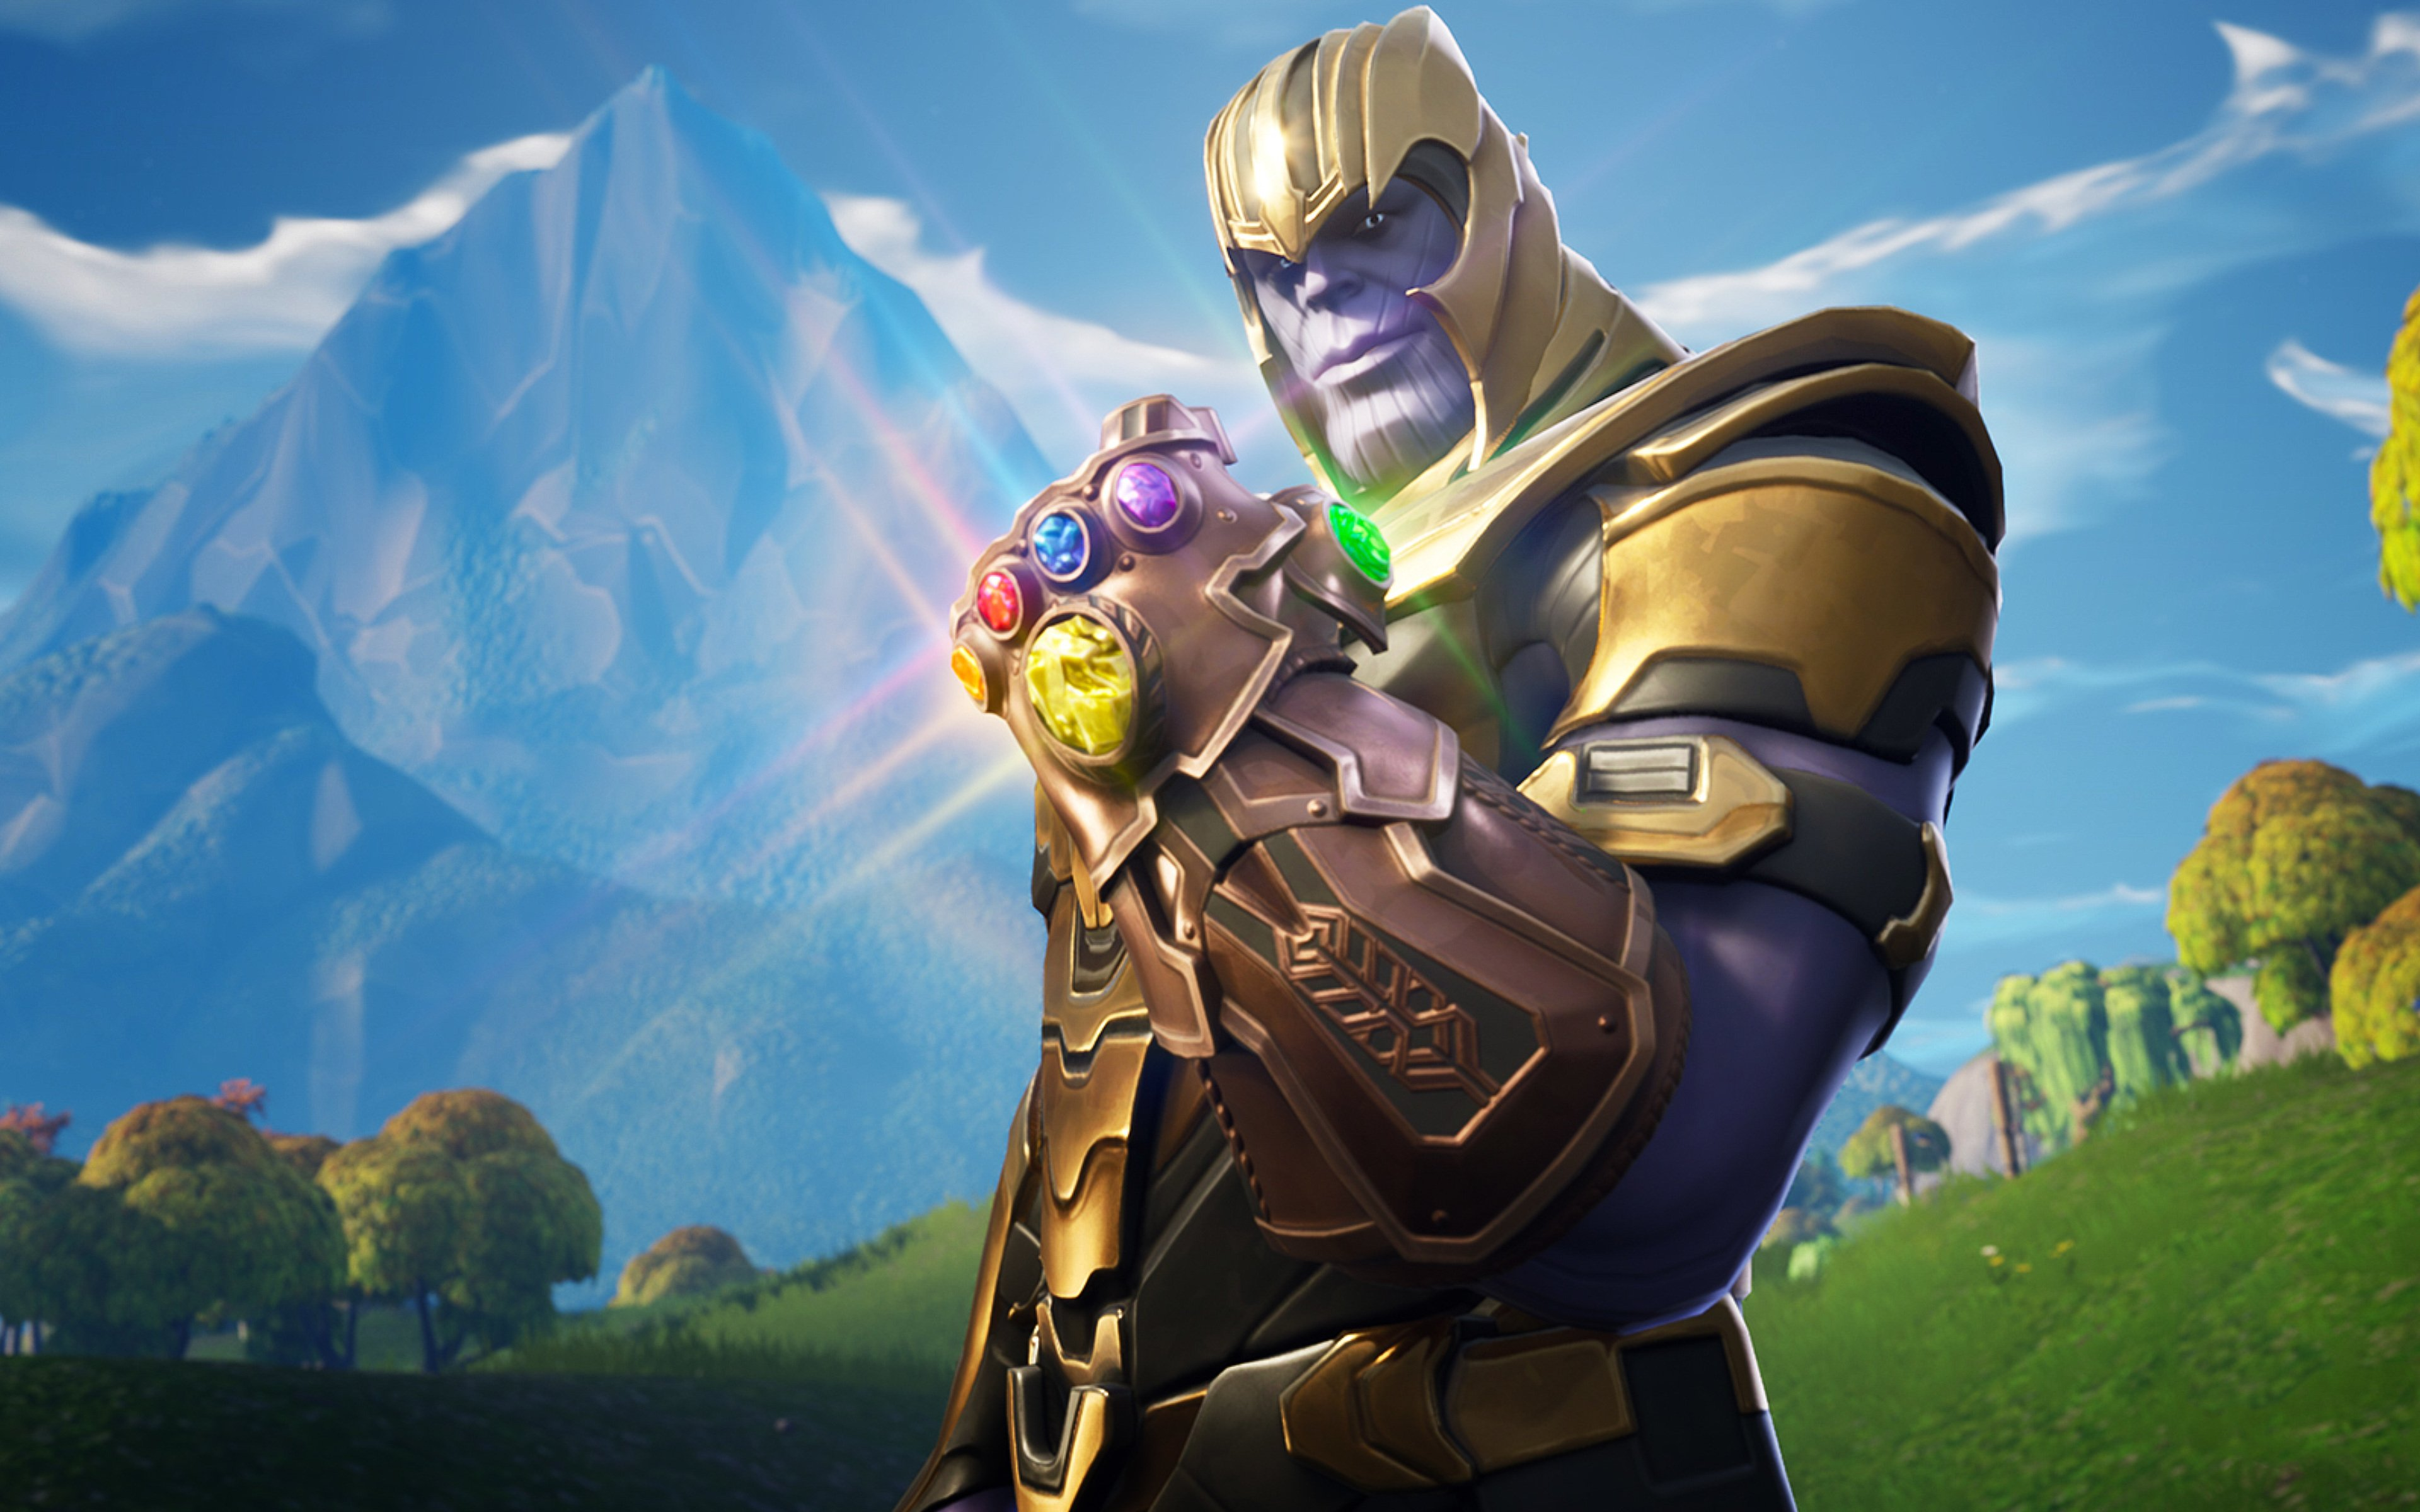 3840x2400 Thanos In Fortnite Battle Royale 4k HD 4k Wallpapers 3840x2400